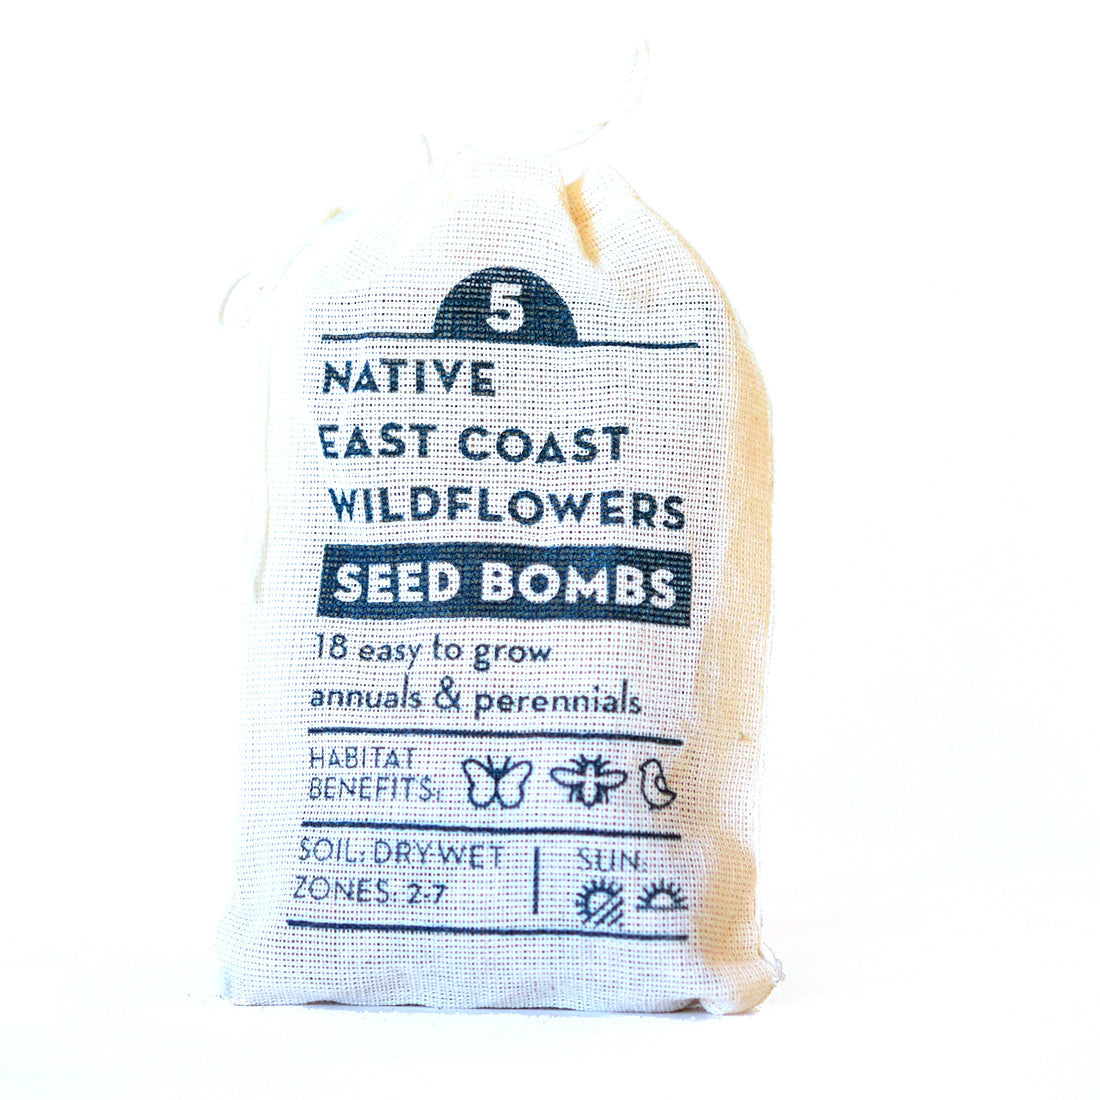 NATIVE EAST COAST WILDFLOWER SEED BOMBS